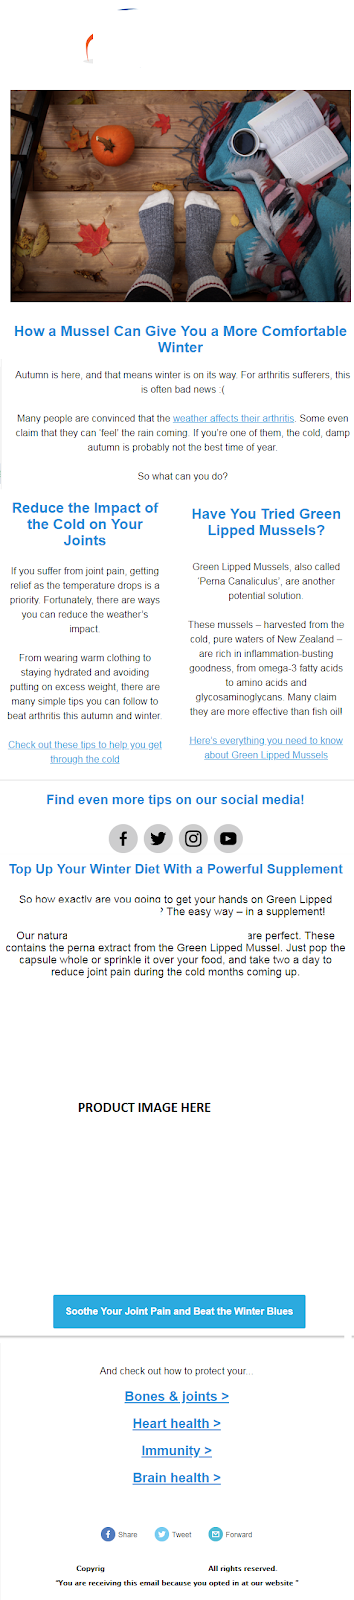 An example of the email newsletters we sent out